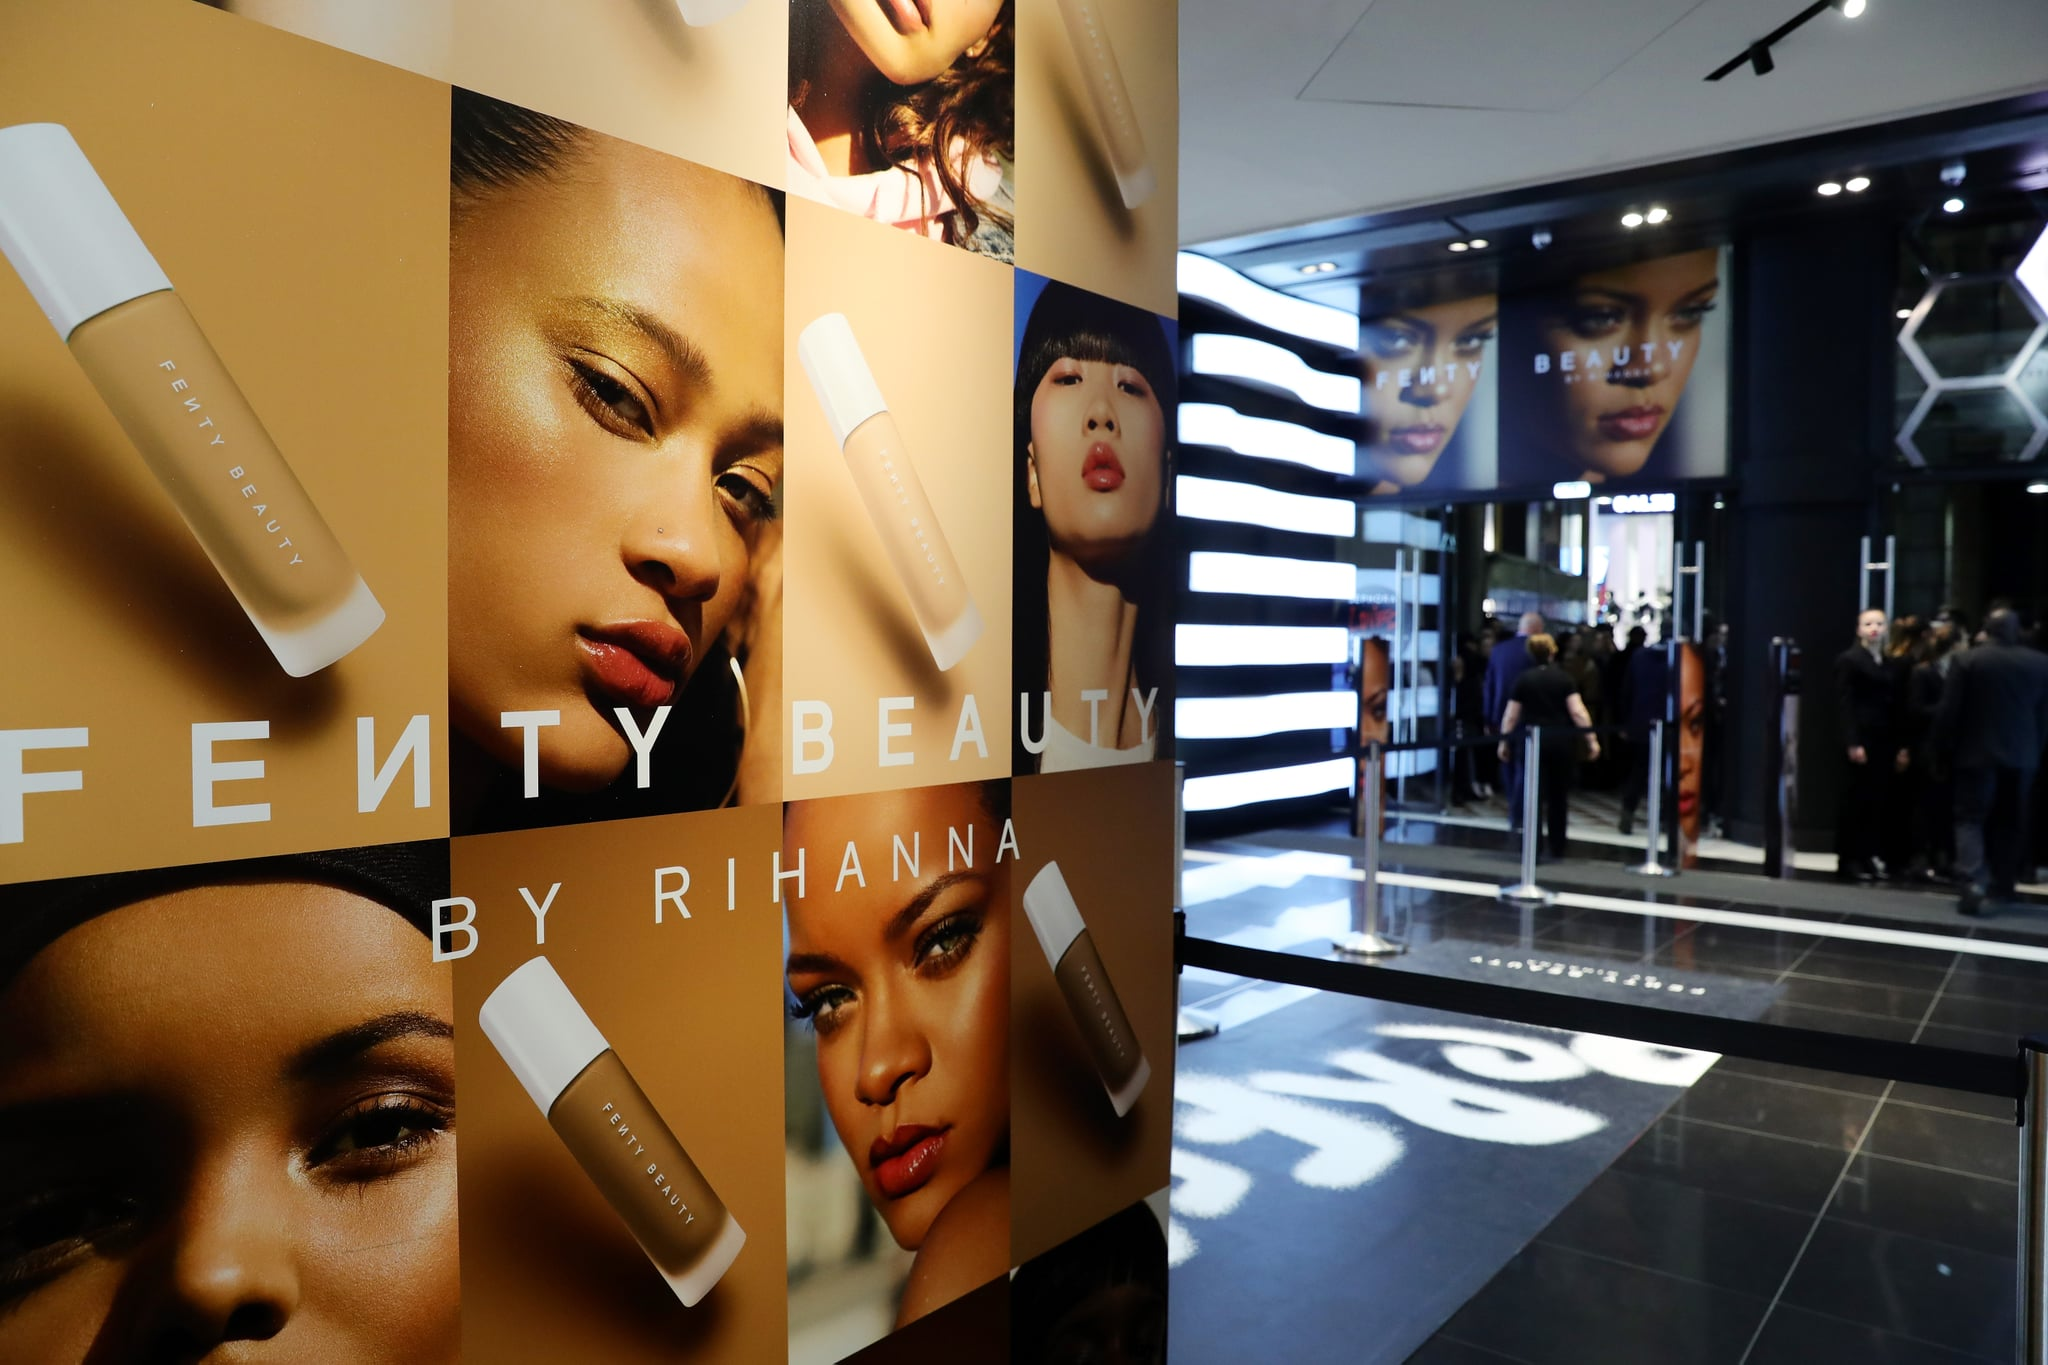 MILAN, ITALY - APRIL 05:  General view of Sephora loves Fenty Beauty by Rihanna store event on April 5, 2018 in Milan, Italy.  (Photo by Vittorio Zunino Celotto/Getty Images for Sephora loves Fenty Beauty by Rihanna store event )